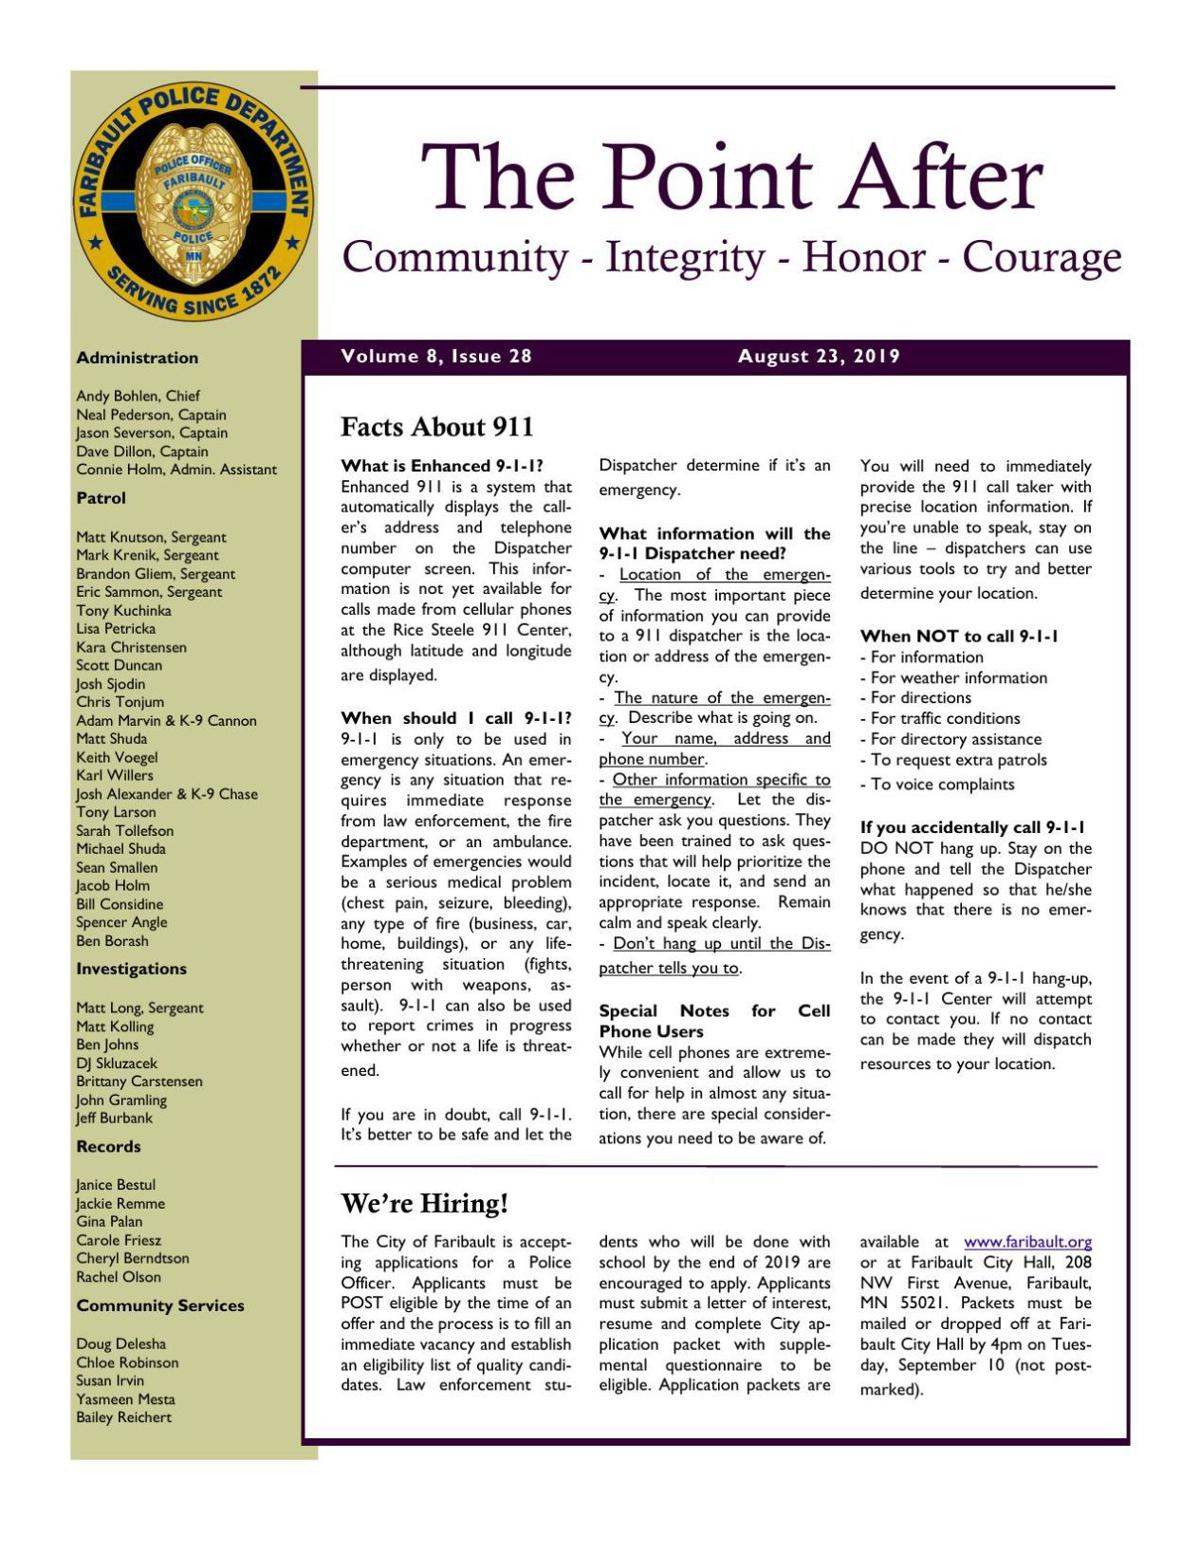 The Point After, Faribault Police Dept. weekly newsletter - Aug. 23